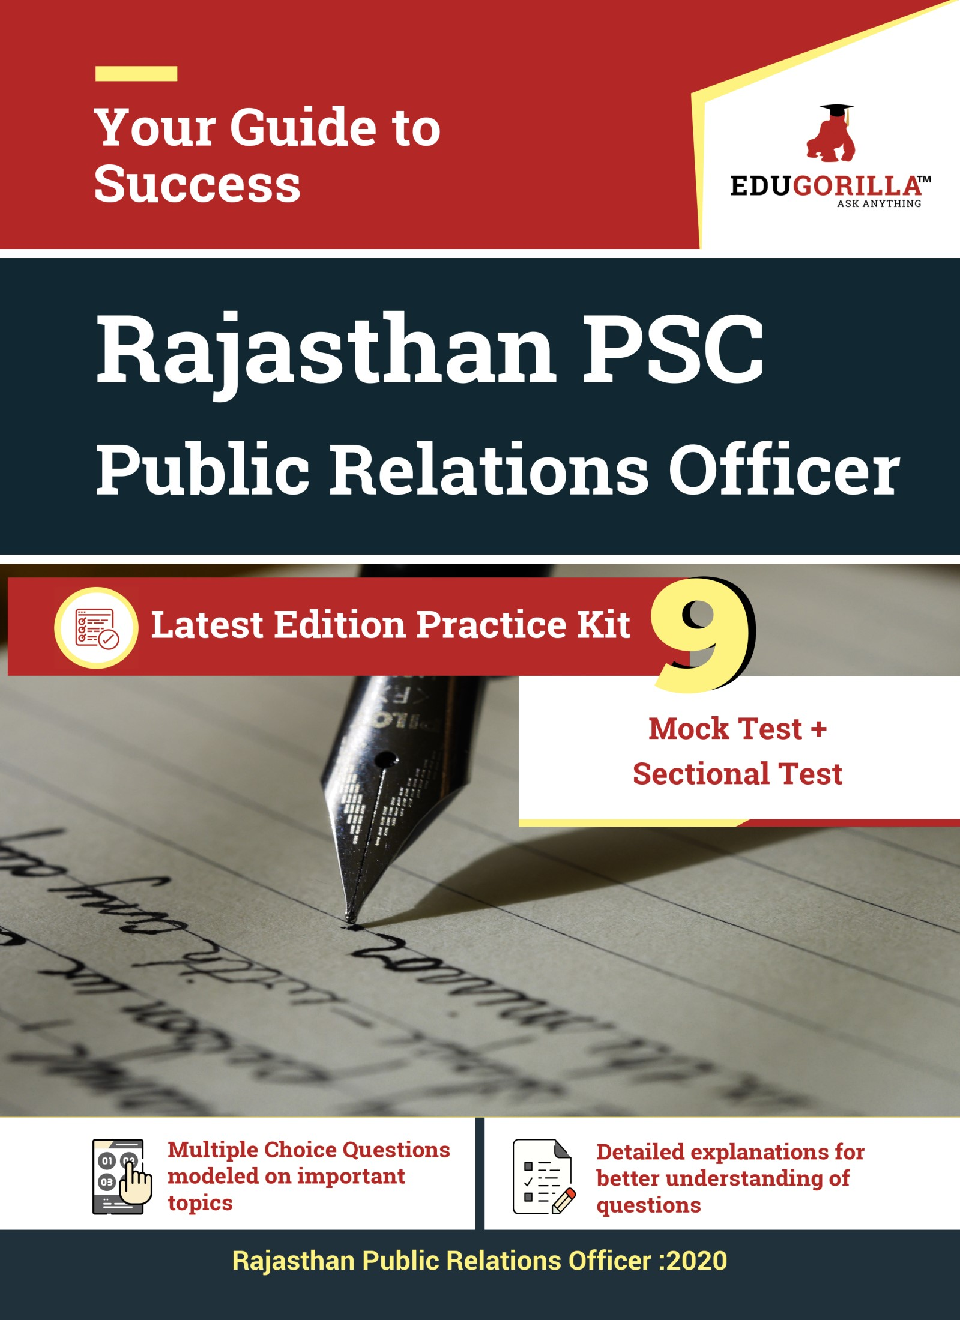 Edugorilla Rajasthan PSC (RPSC) - Public Relations Officer (PRO) 2020   9 Full Length Mock Test + Sectional Test   With Complete Solution - Page 1